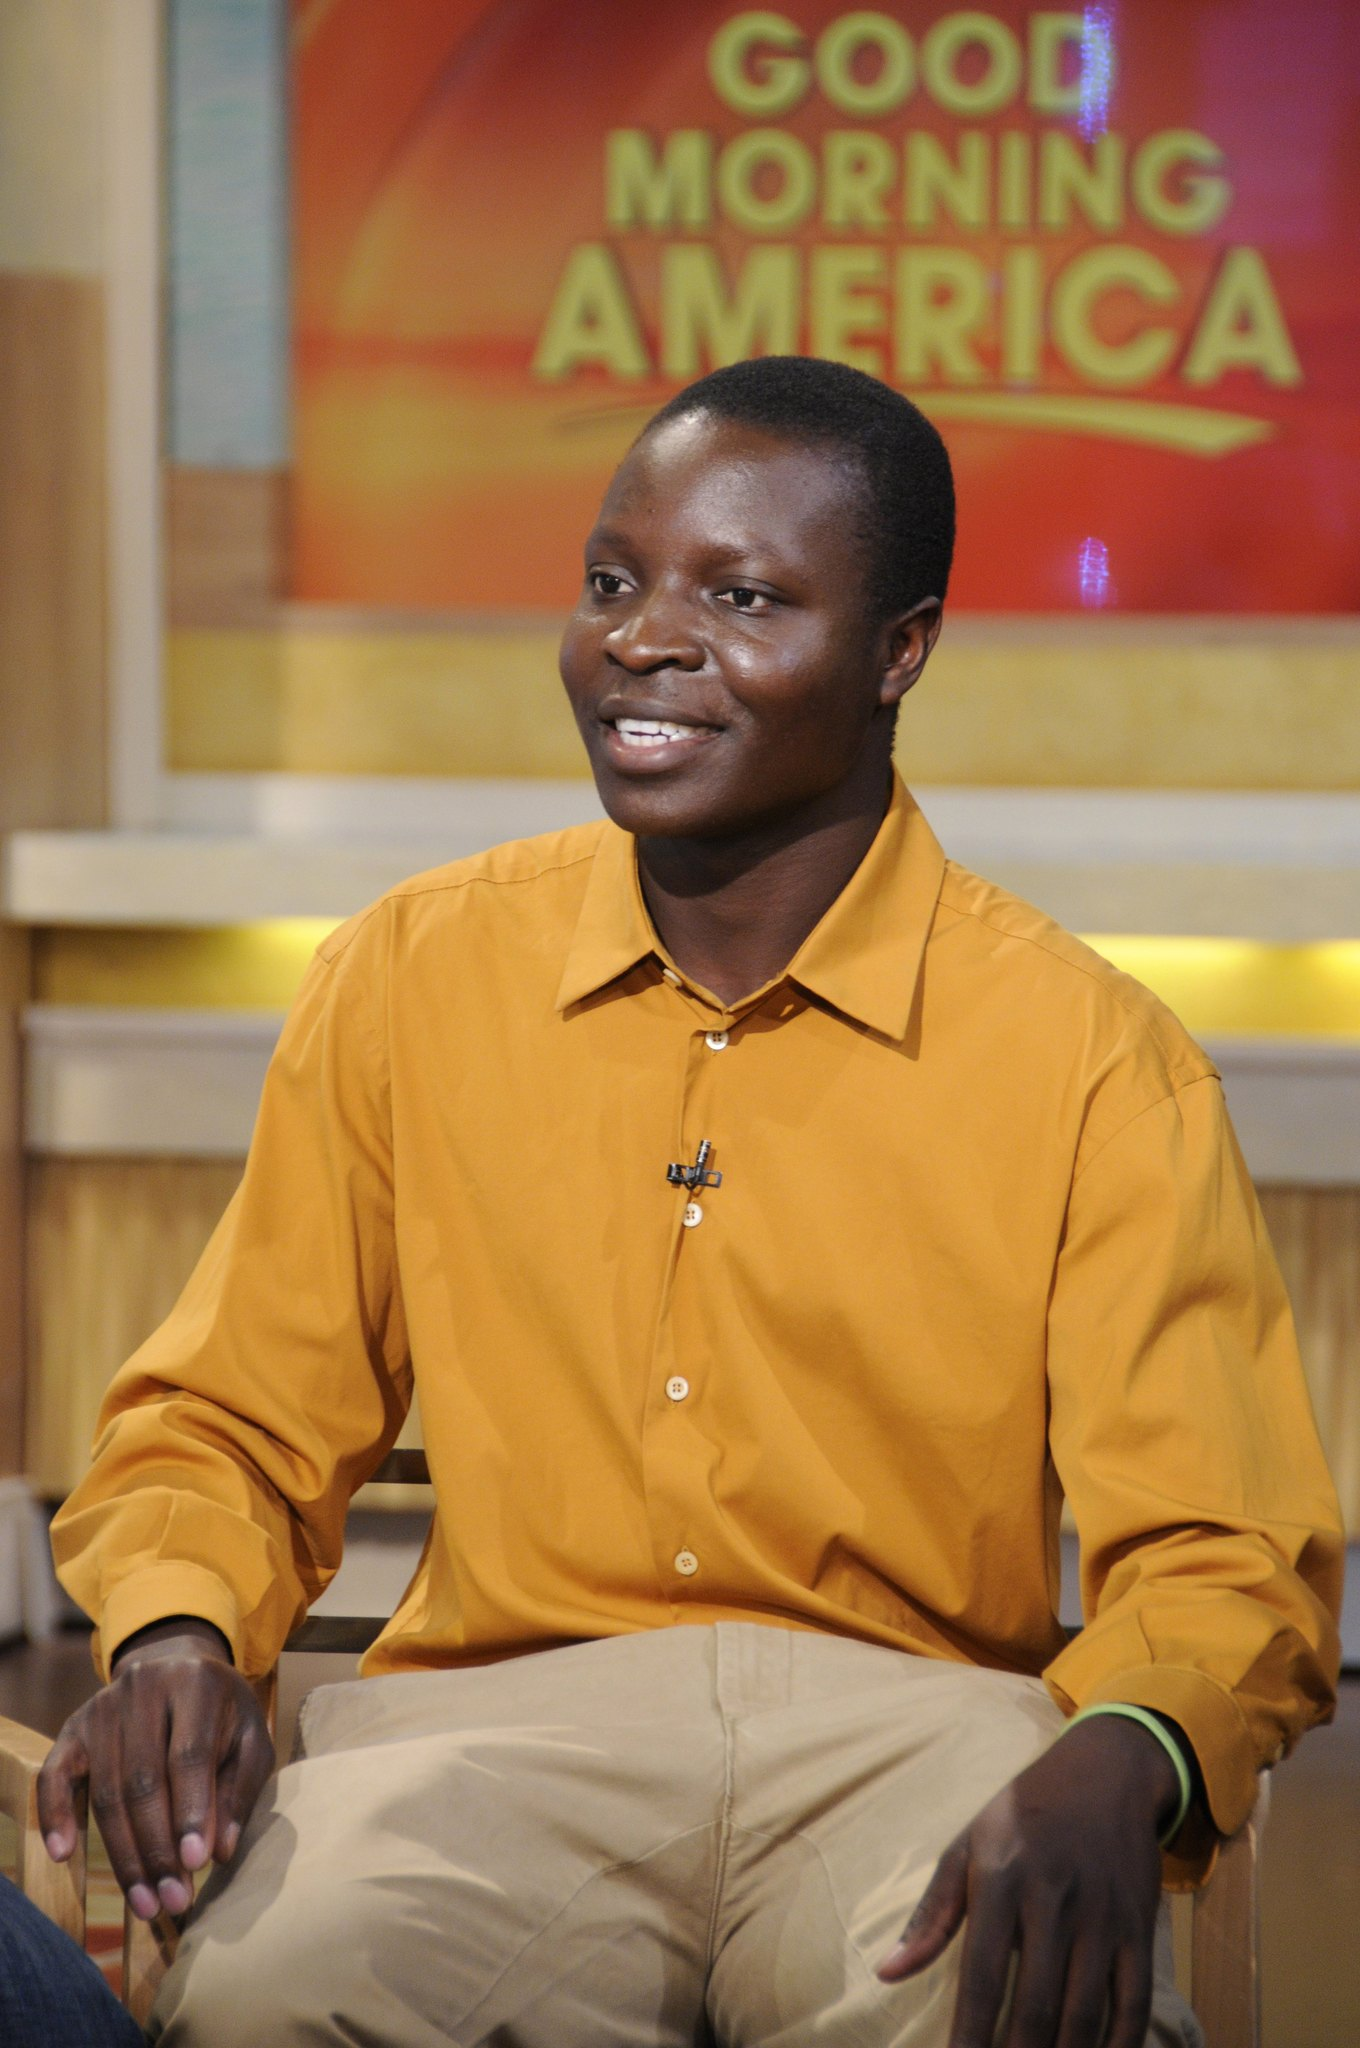 William Kamkwamba at an event for Good Morning America (1975)